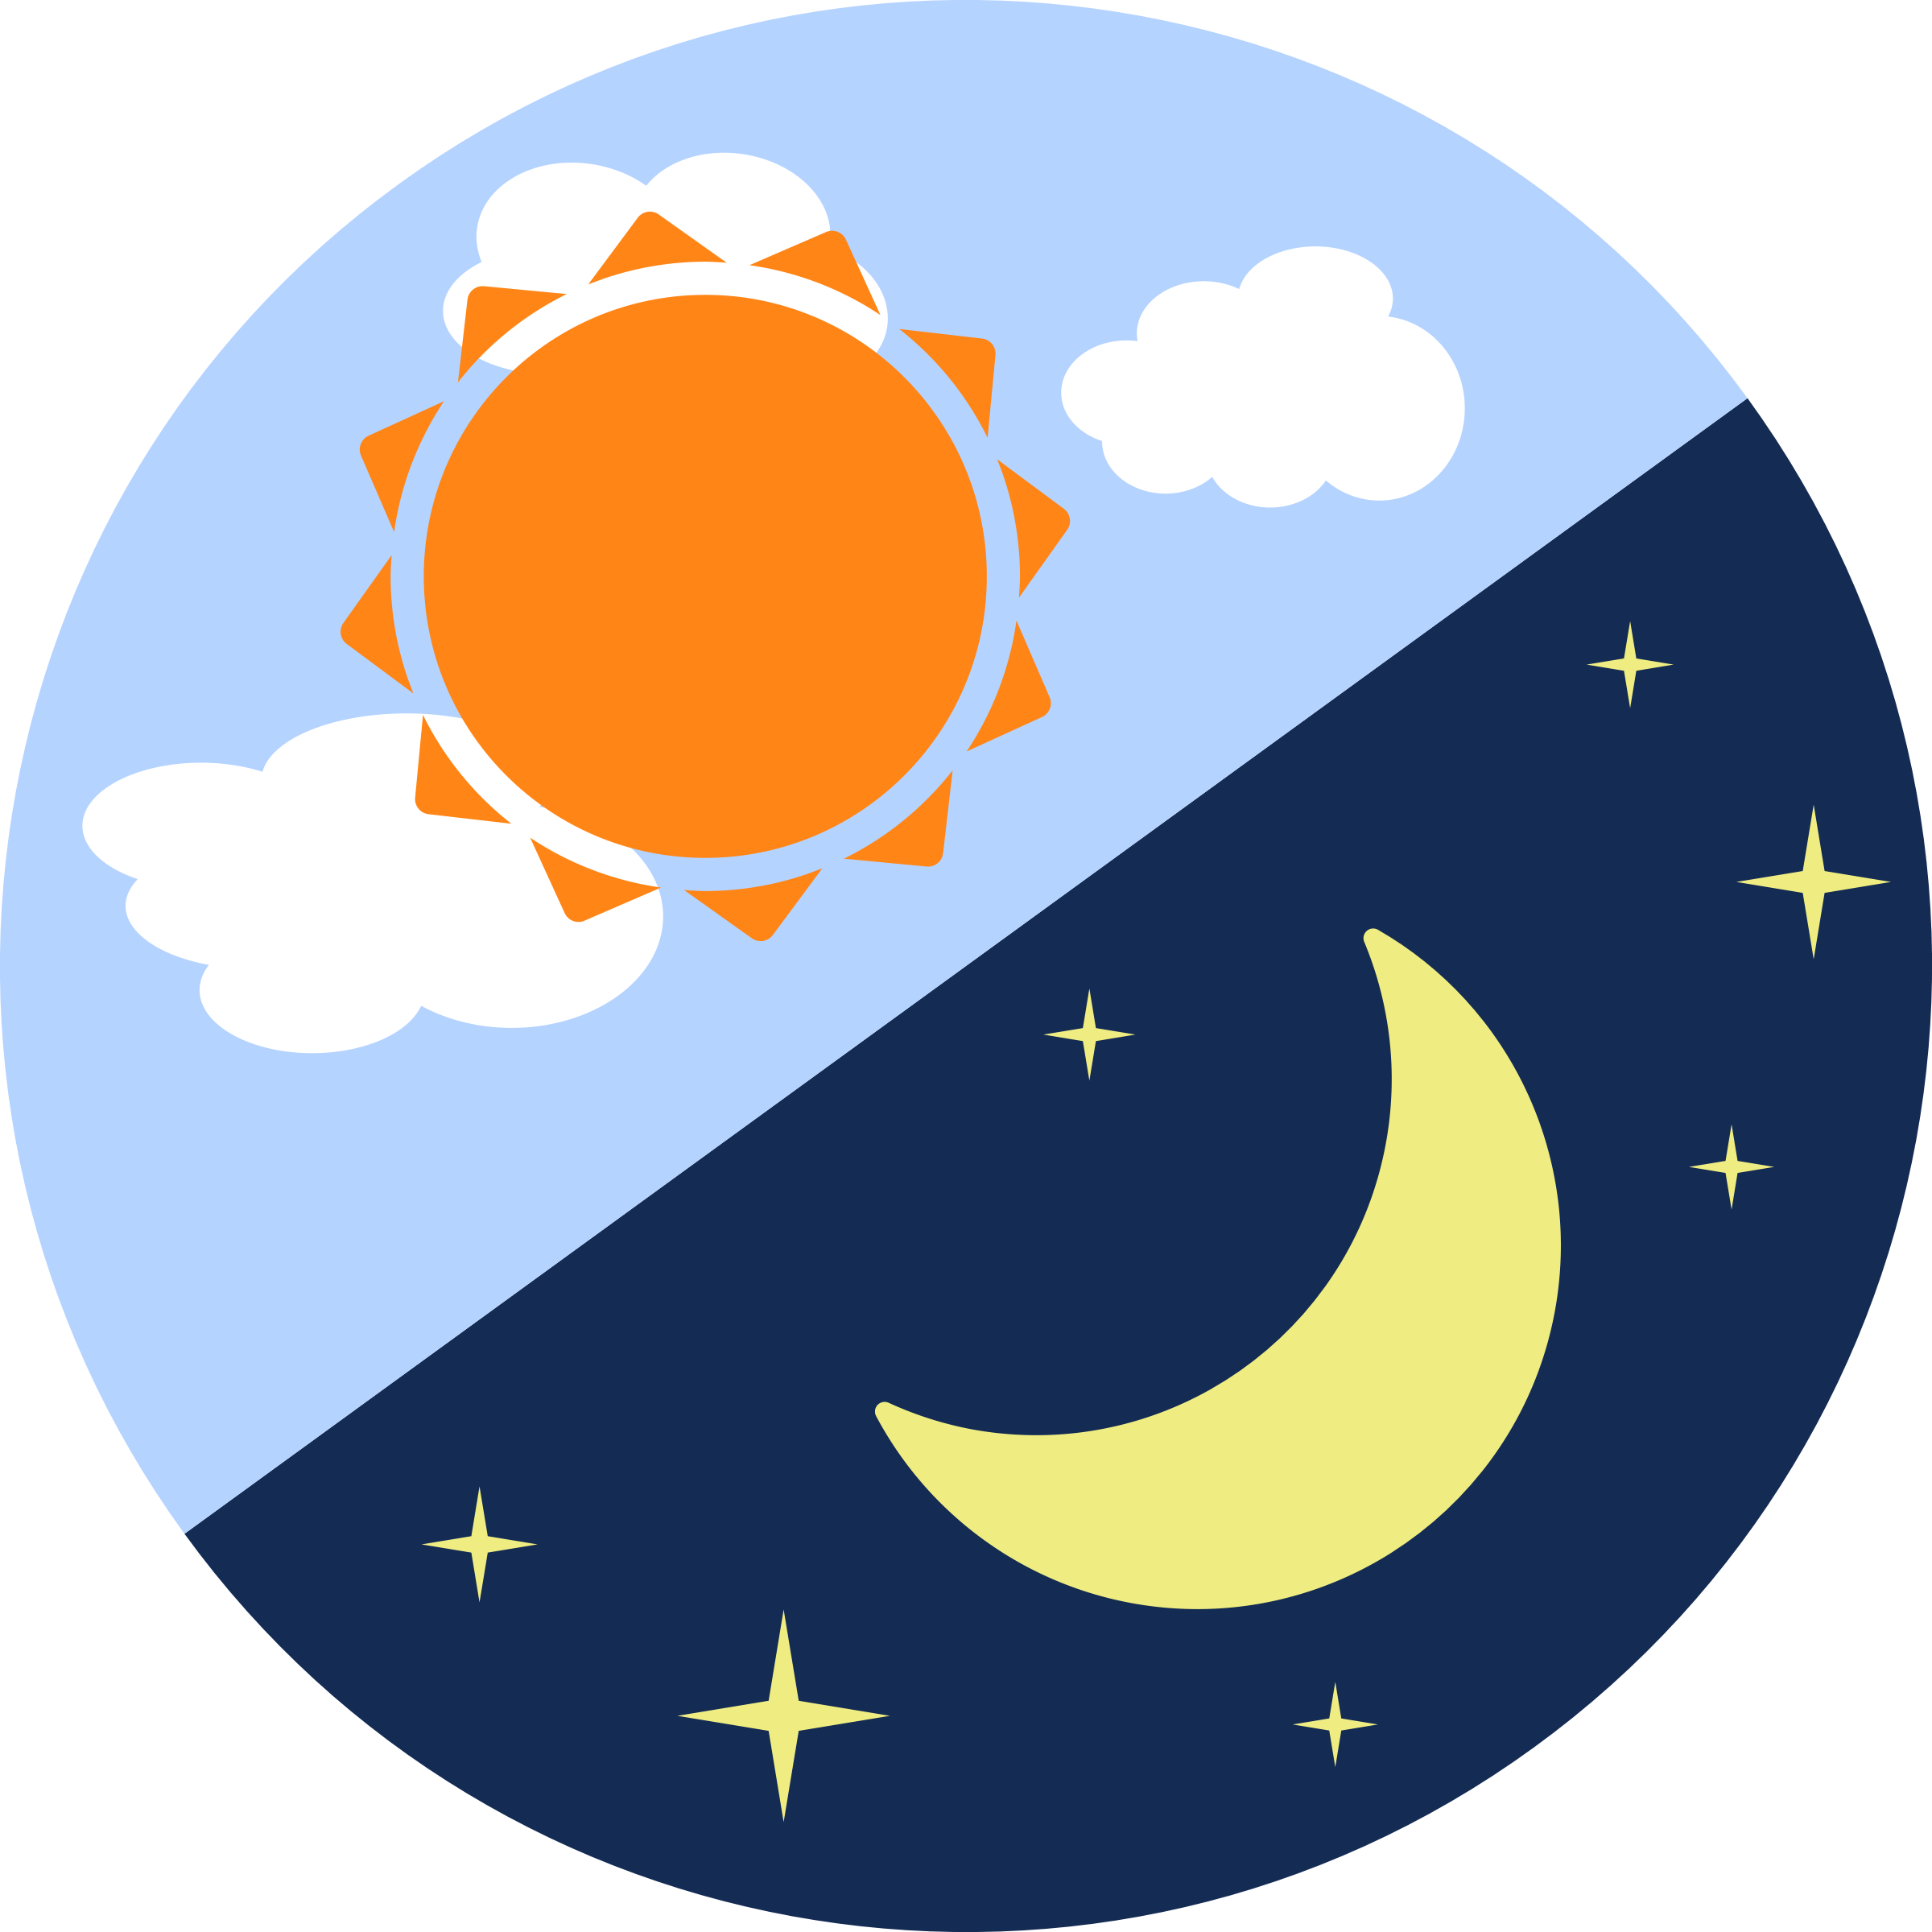 Day clipart nighttime, Day nighttime Transparent FREE for.